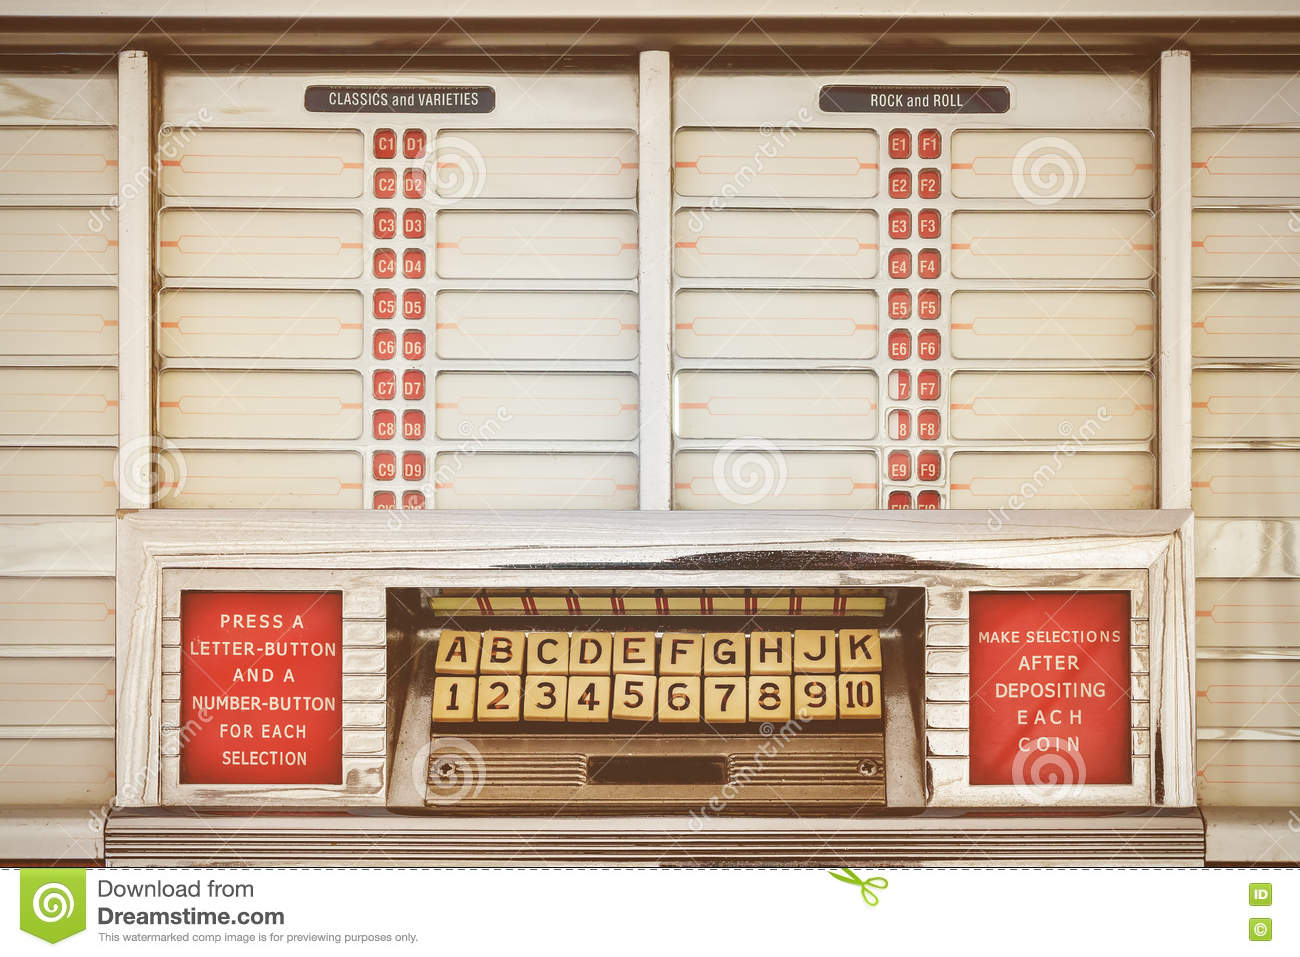 Retro jukebox stock images download 609 photos for Jukebox labels template